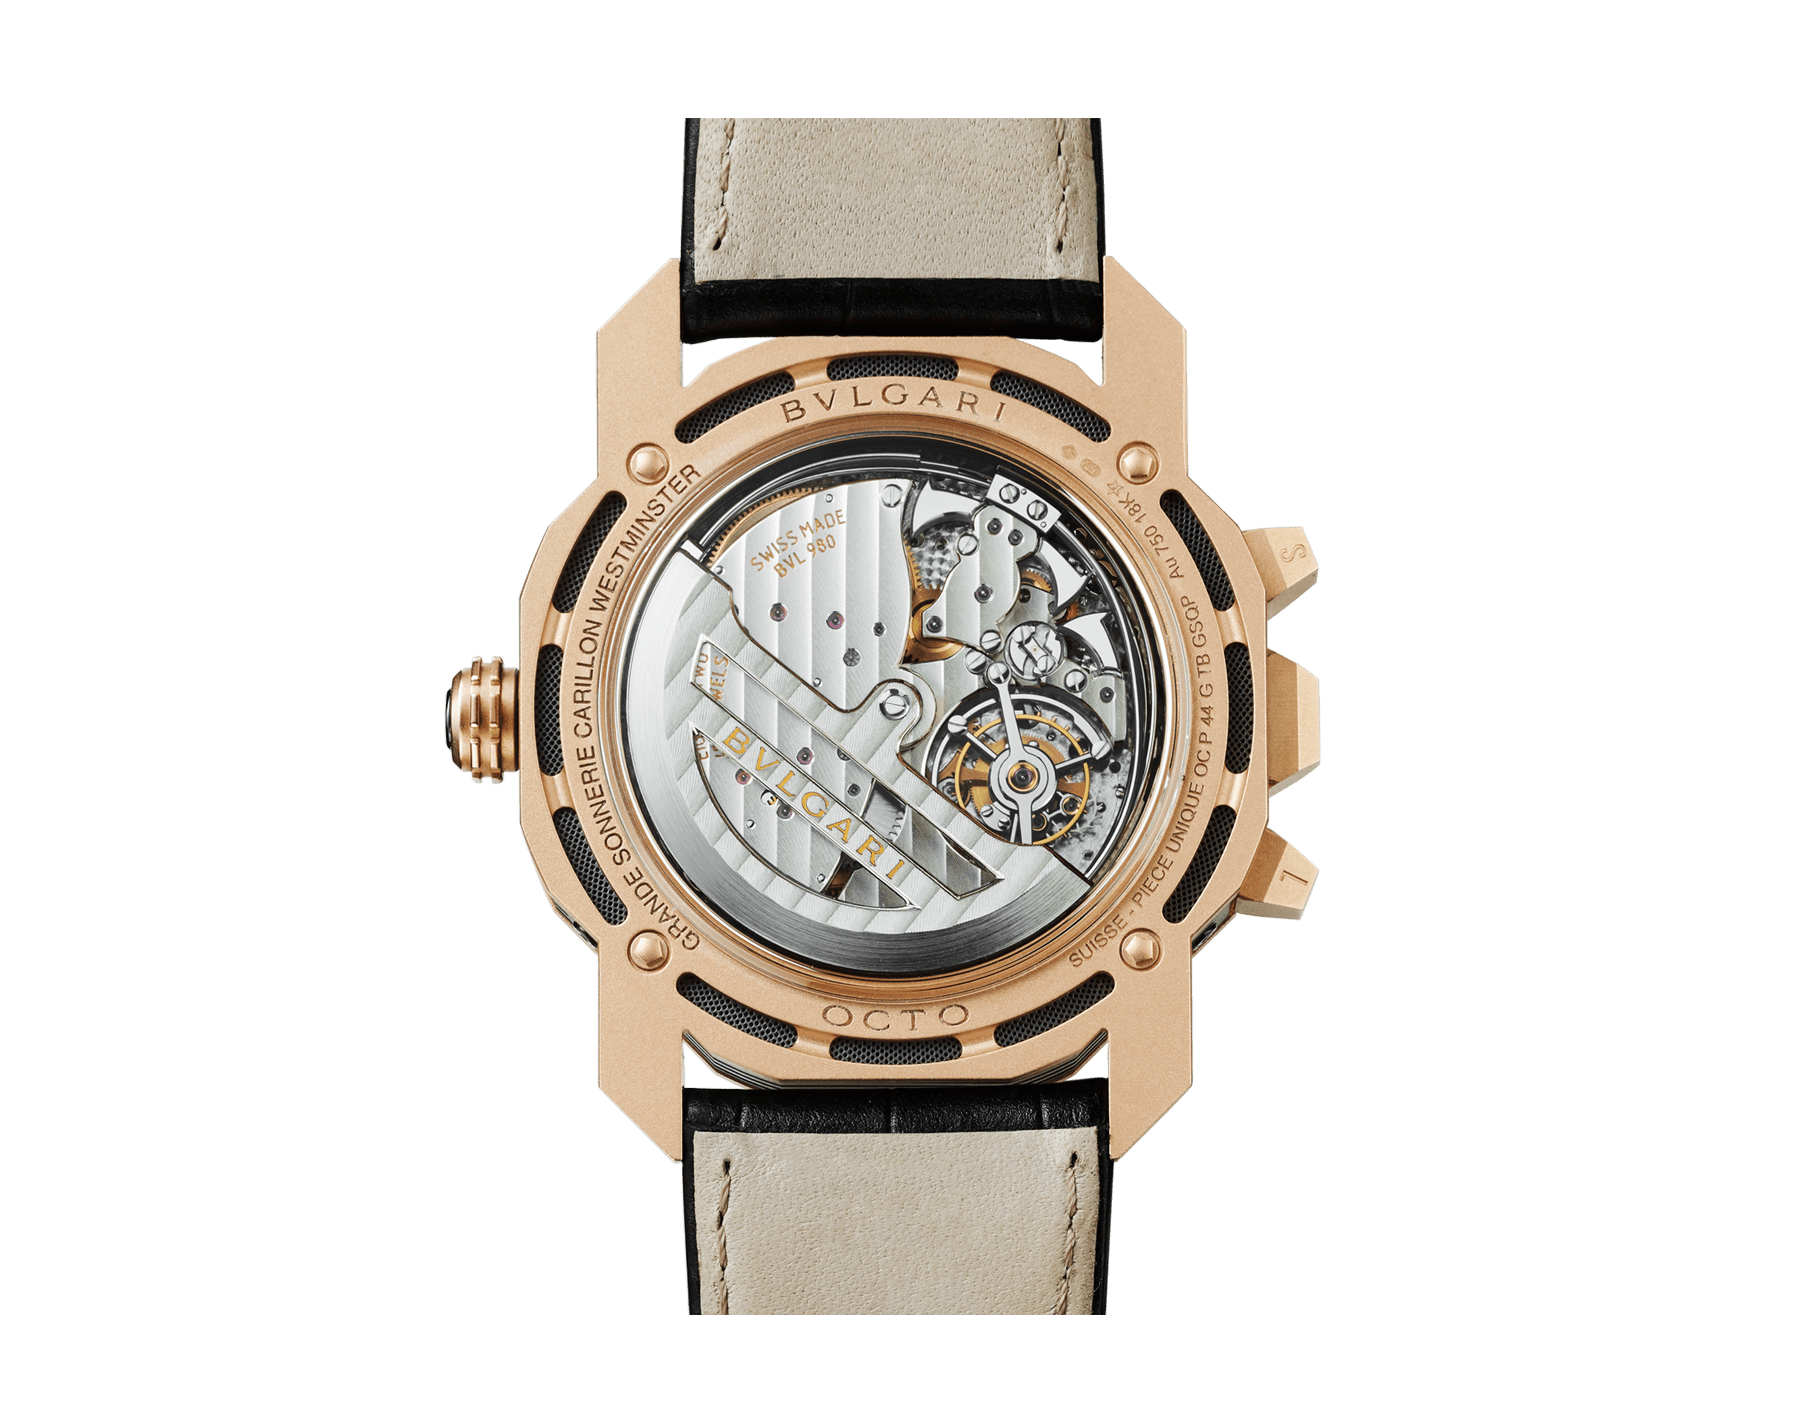 Octo Grande Sonnerie watch with mechanical manufacture movement, Grande and Petite Sonnerie, minute repeater, tourbillon, perpetual calendar, moonphases, movement and chime power reserve indicator, 18 kt rose gold sandblasted case, skeletonized dial and black alligator bracelet 102891 image 4